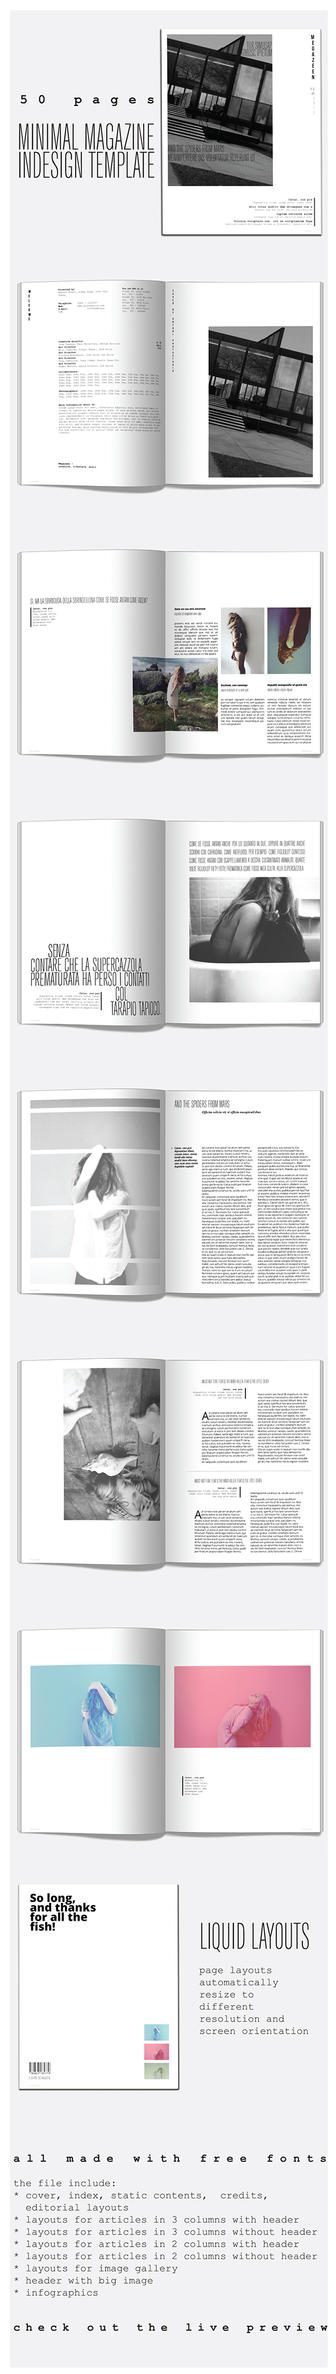 50 Pages Minimal Magazine Template by duemilacentododici